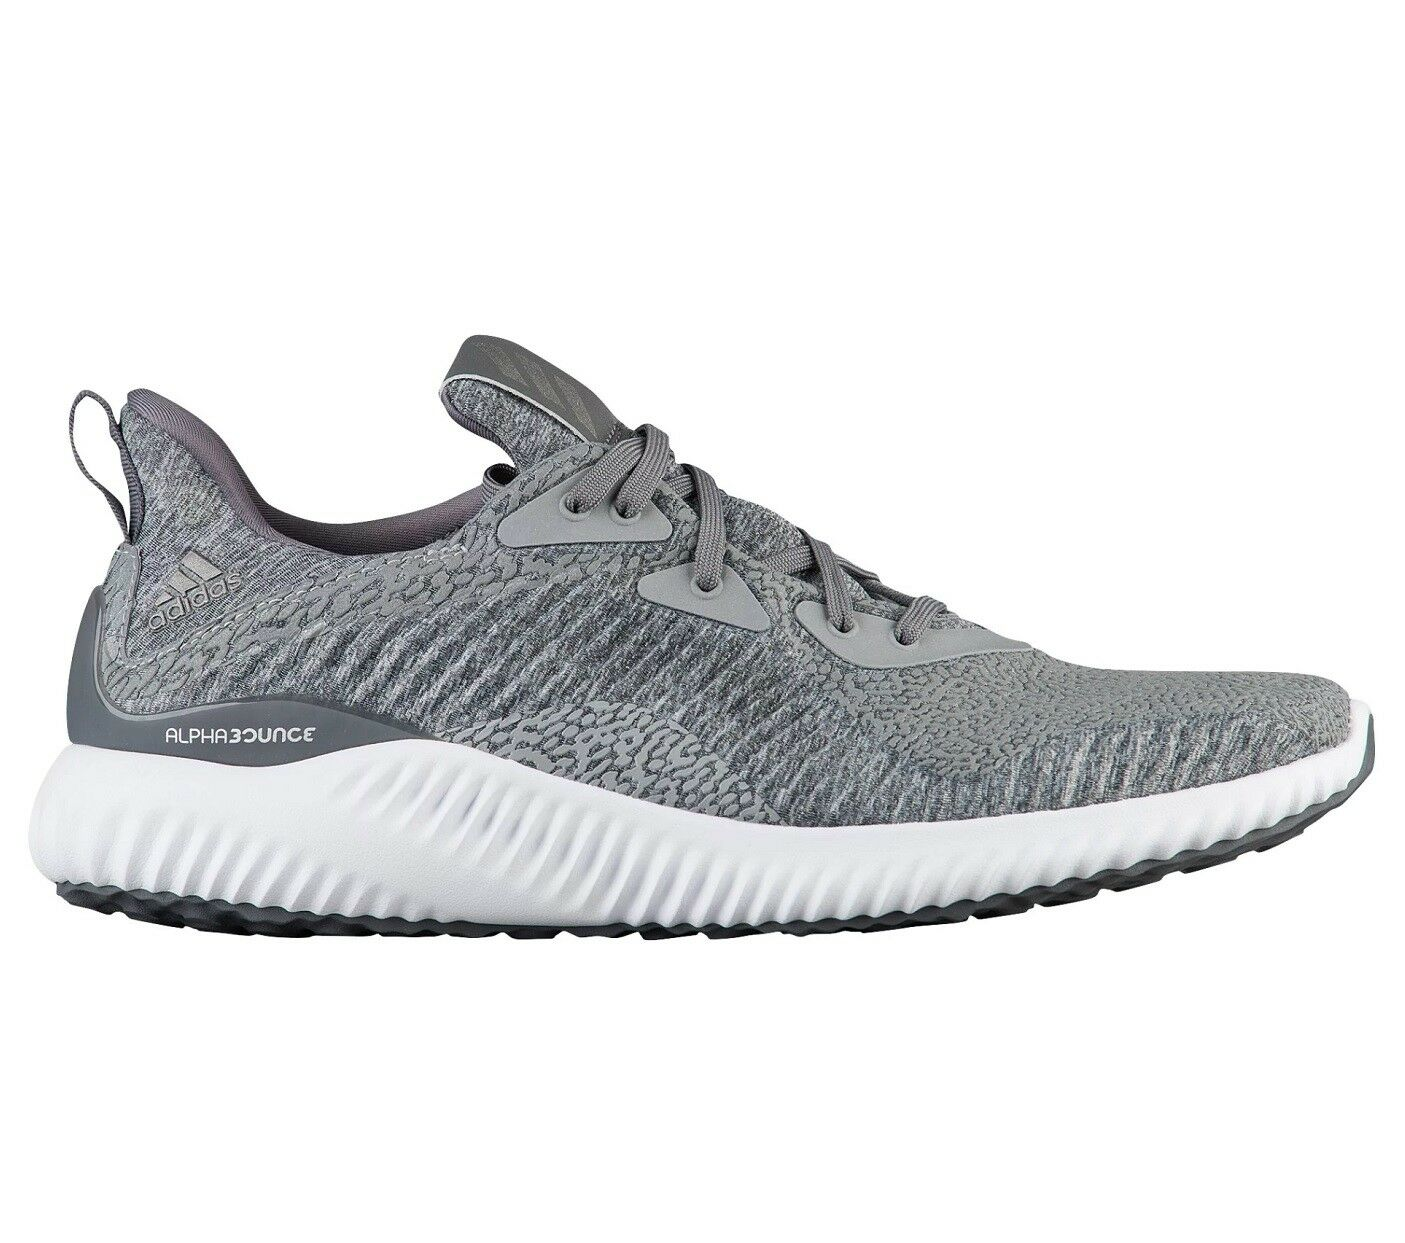 Adidas AlphaBounce HPC Aramis Mens BY4327 Grey ForgedMesh Running Shoes Sz 10.5